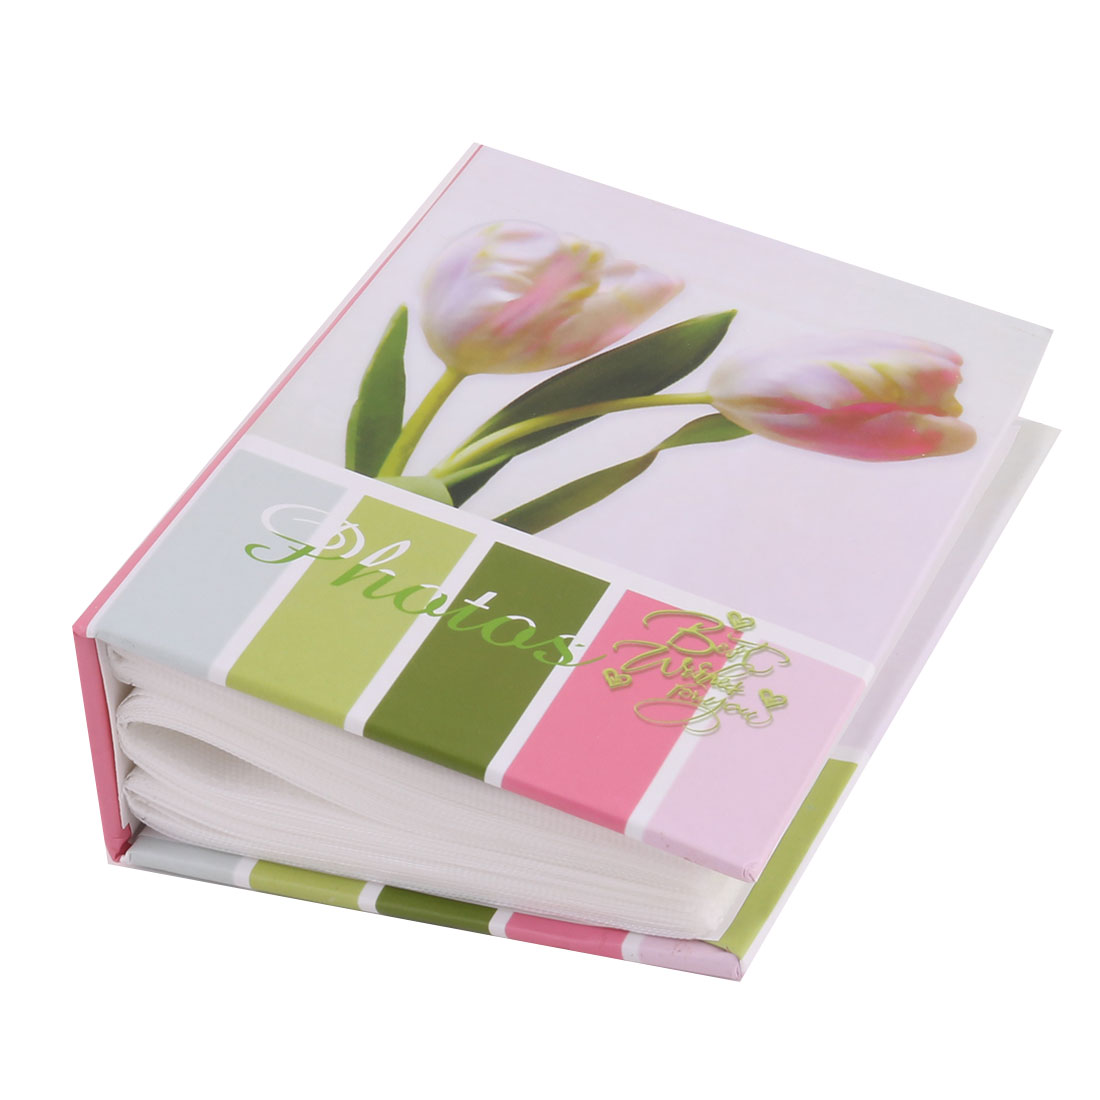 Family Cardboard Flower Pattern Picture Holder Memo Collection Photo Album Pink